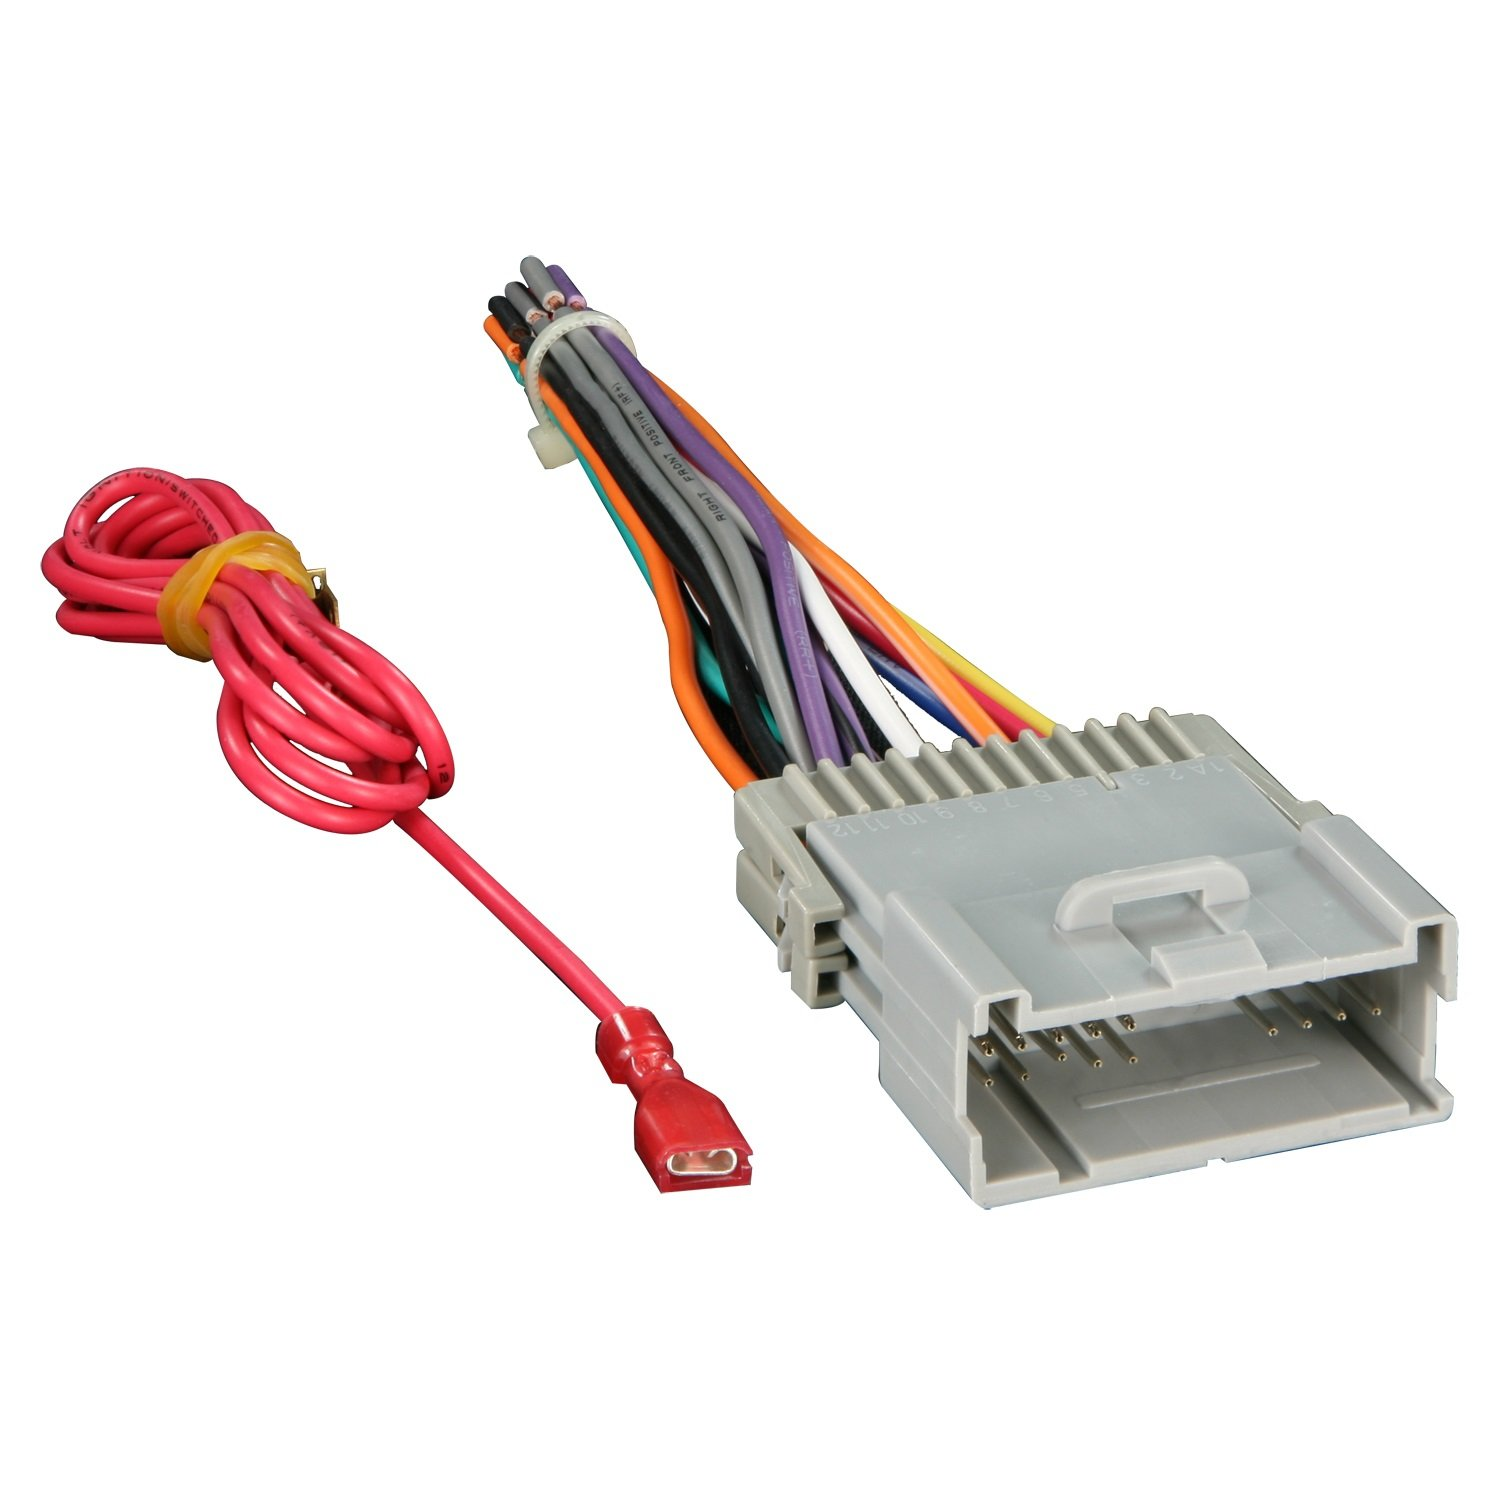 61eewxp9orL._SL1500_ amazon com metra 70 2003 radio wiring harness for gm 98 08 wiring harness stereo at mifinder.co